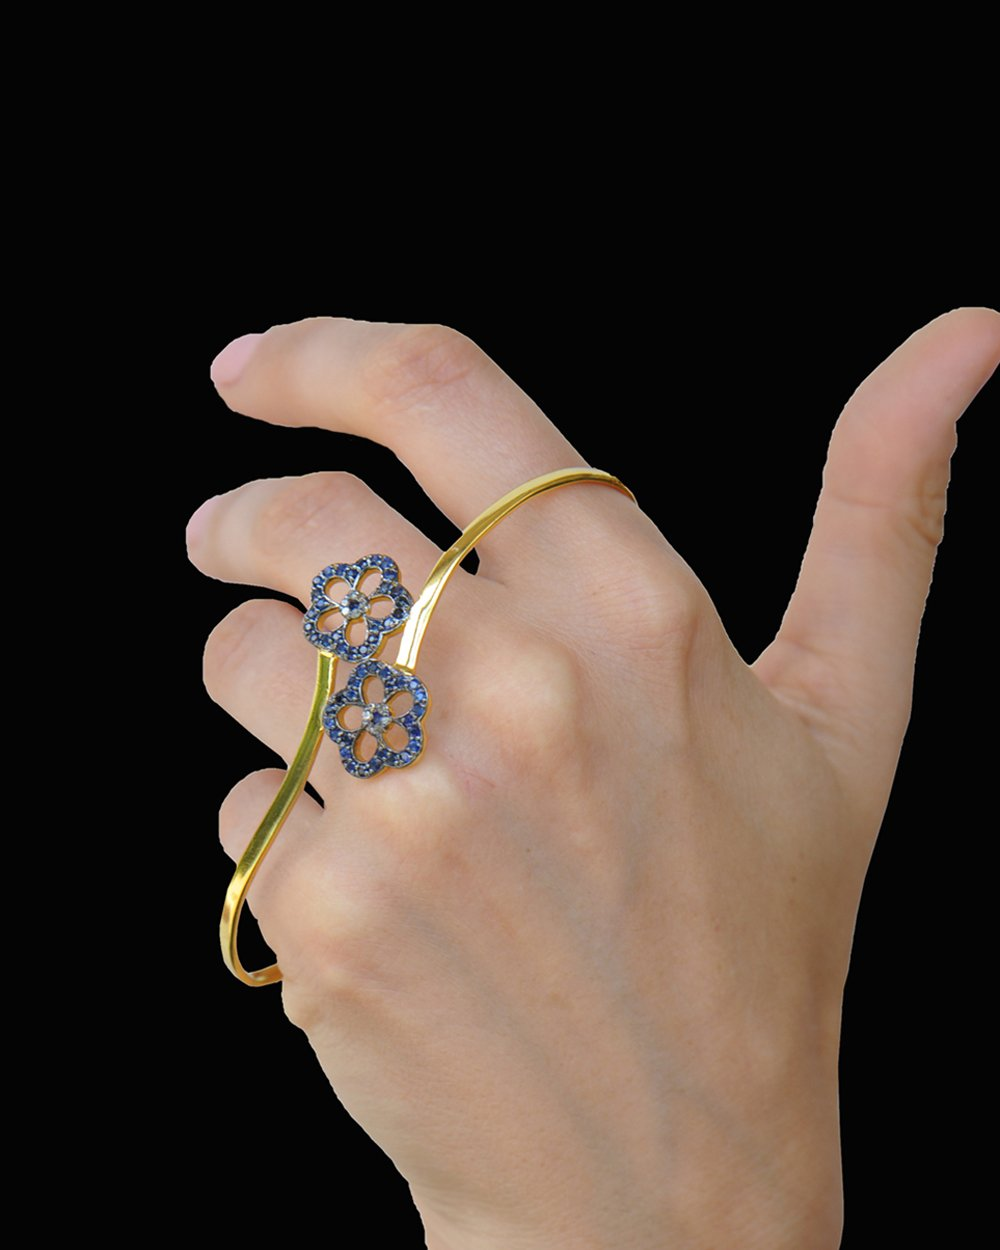 Hand Palm Bracelet with Diamonds and Blue Sapphire Flowers